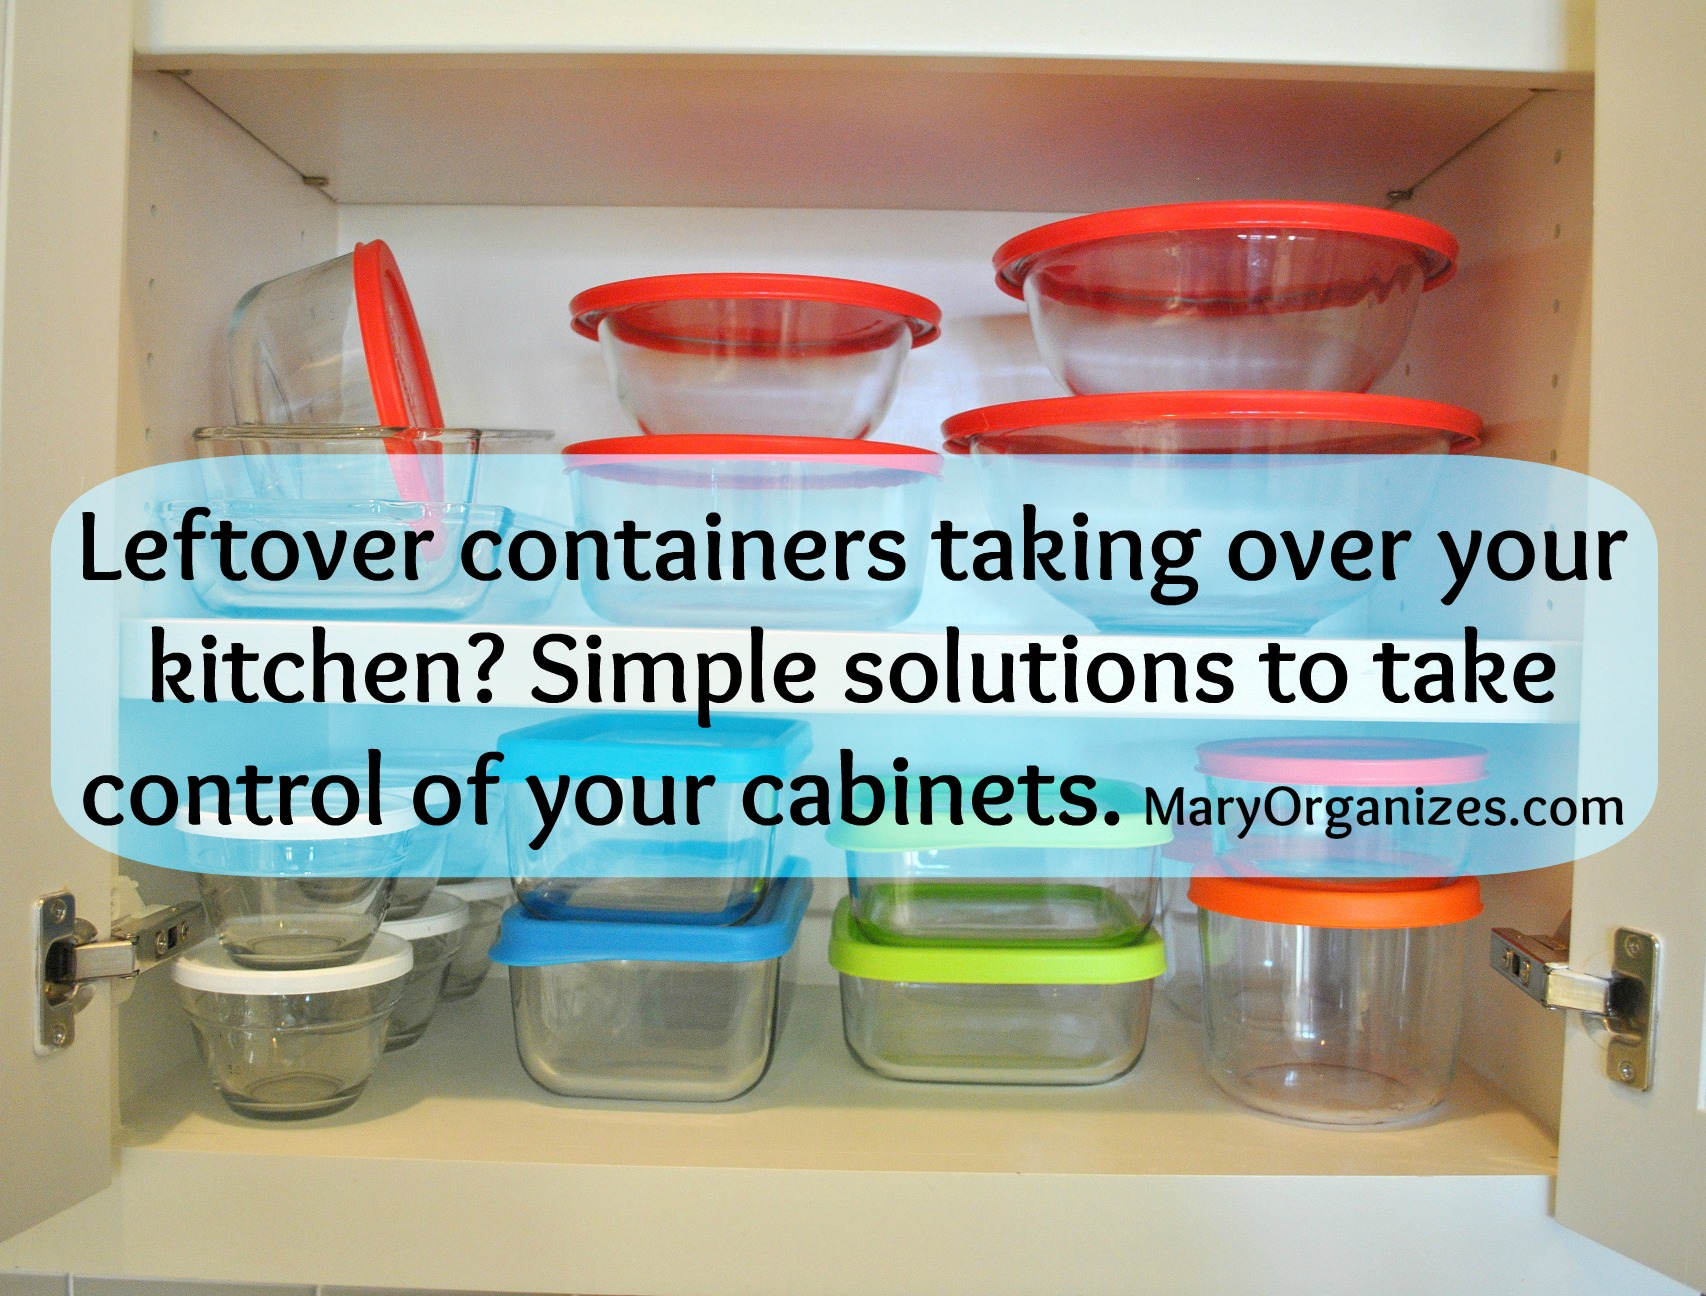 Too Many Leftover Containers! & A Little Bit About Organizing ...